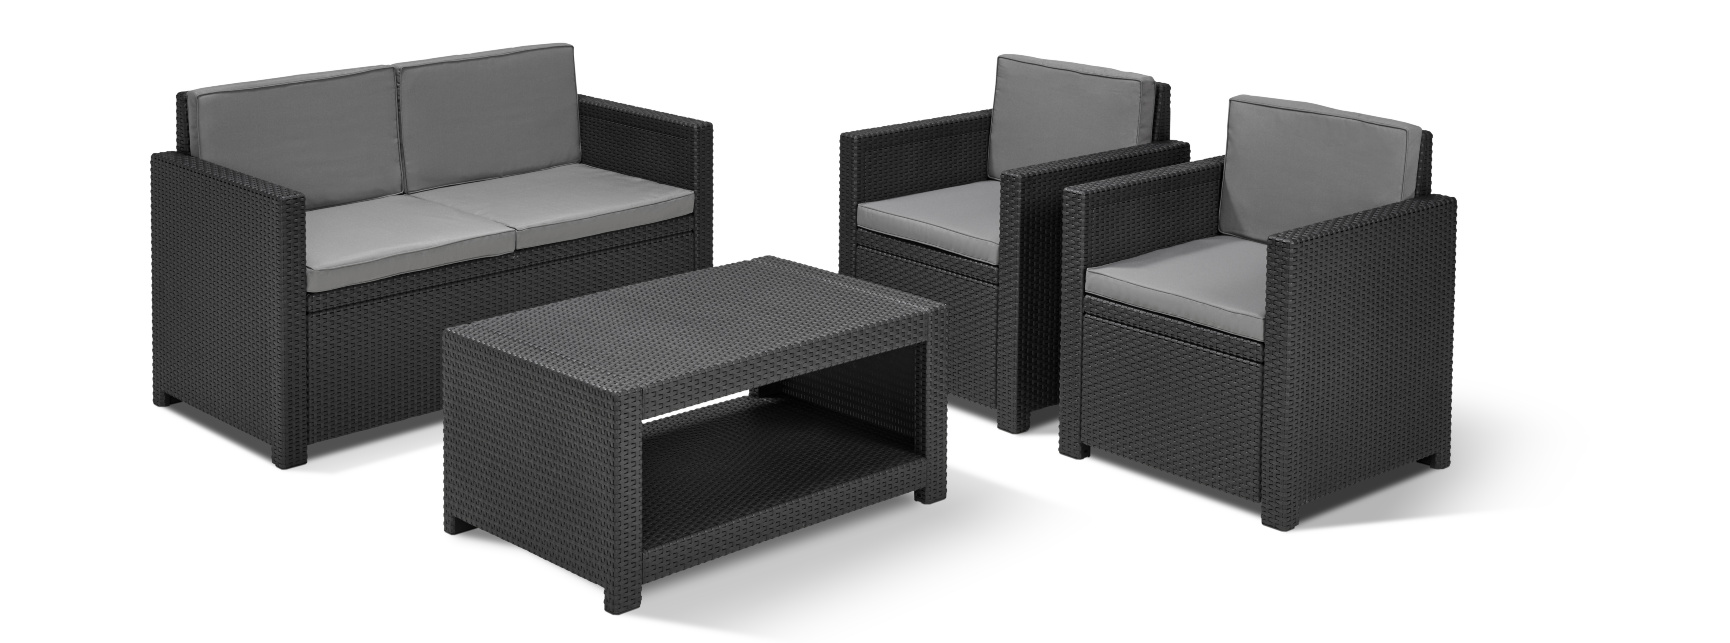 ALLIBERT Monaco Lounge Set Graphit - Allibert